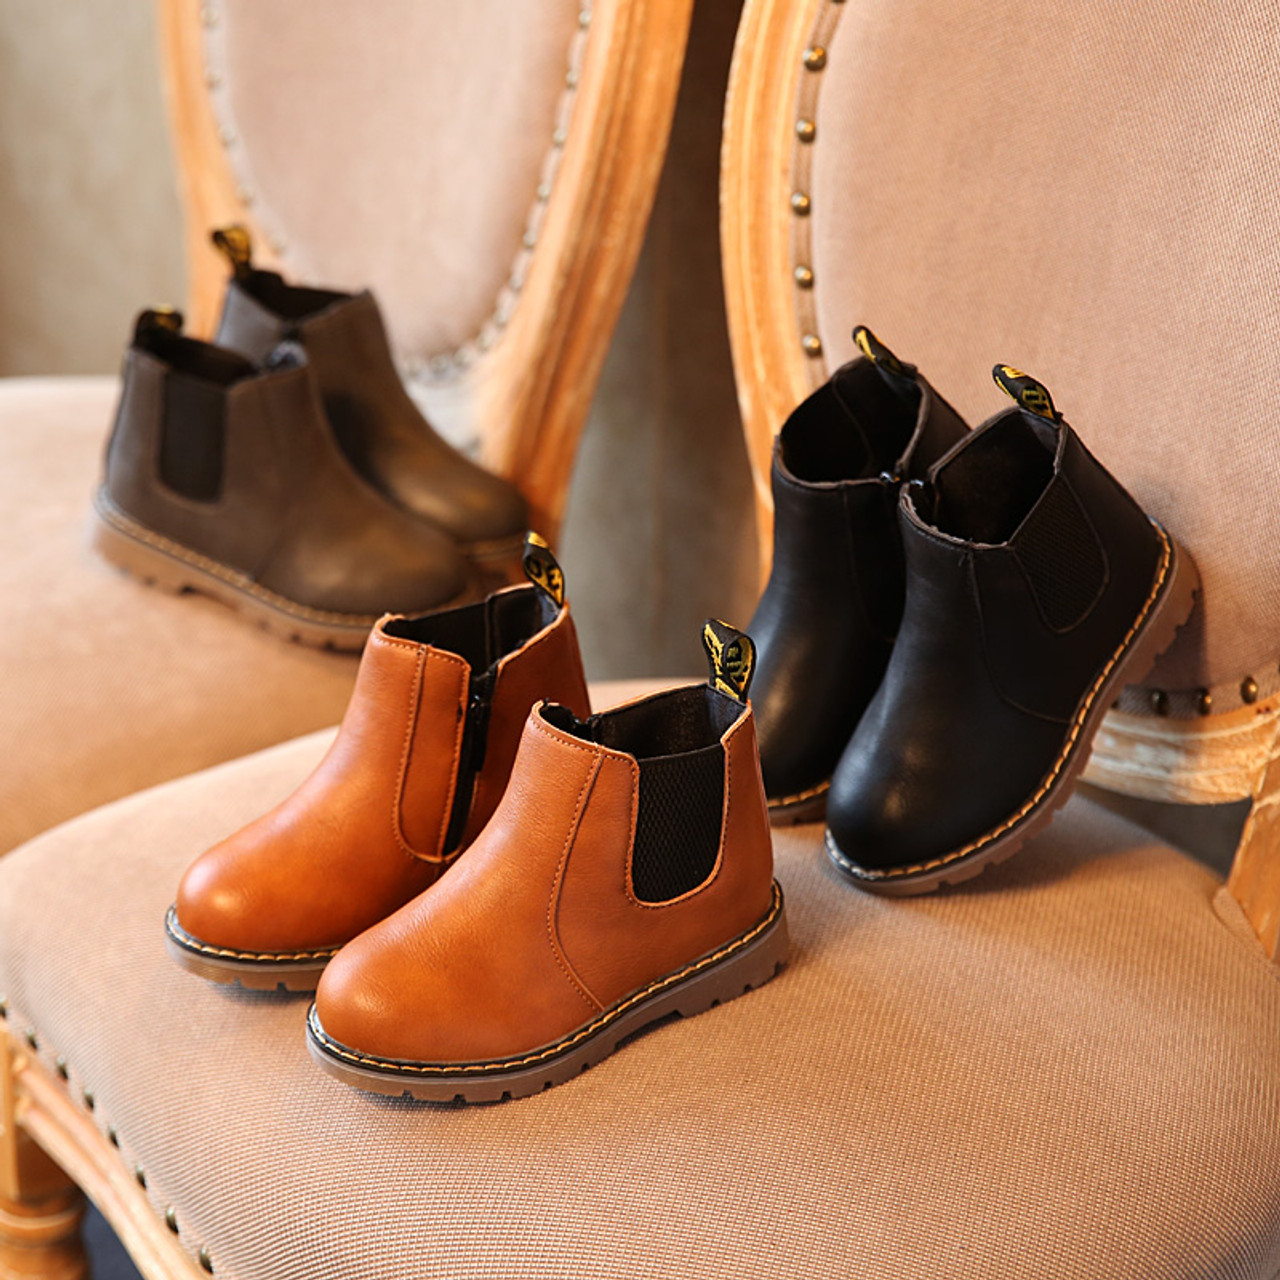 USA Kid Boys Girl Winter Warm Chelsea Ankle Boots Infant Faux Leather Shoes Size